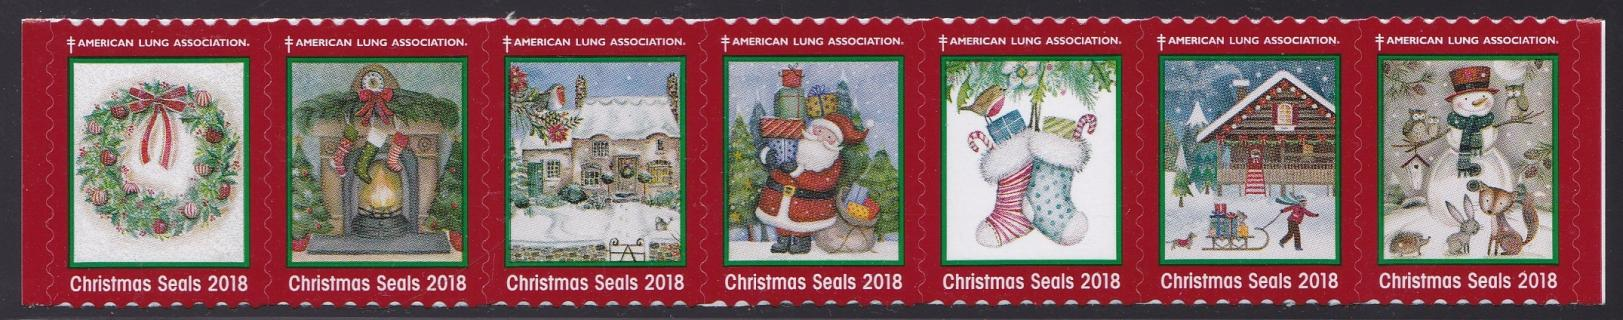 2018 US Christmas Seal issued by the American Lung Association